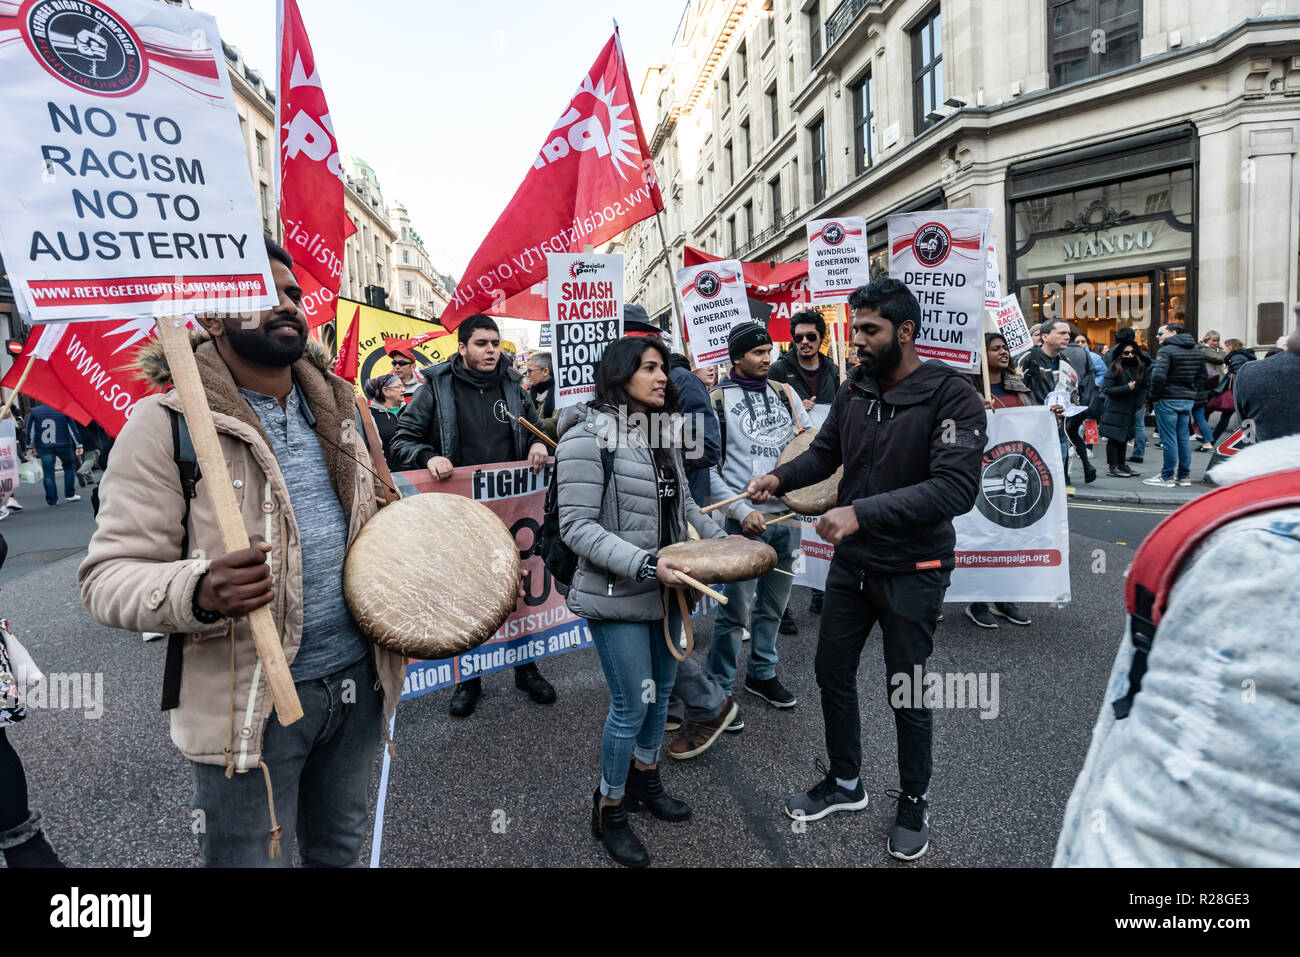 London, UK. 17th November 2018. Drummers for the Refugee Rights Campaign. Thousands marched from the BBC to a rally in Whitehall calling for unity against the rising threat of Islamophobia and Antisemitism by far-right groups in the UK, with a level of support for fascism not seen since the 1930s. The event was initiated by Stand Up To Racism, co-sponsored by Unite Against Fascism and LoveMusic HateRacism, and supported by many other groups and individuals including Diane Abbott MP and John McDonnell MP. Peter Marshall/Alamy Live News - Stock Image